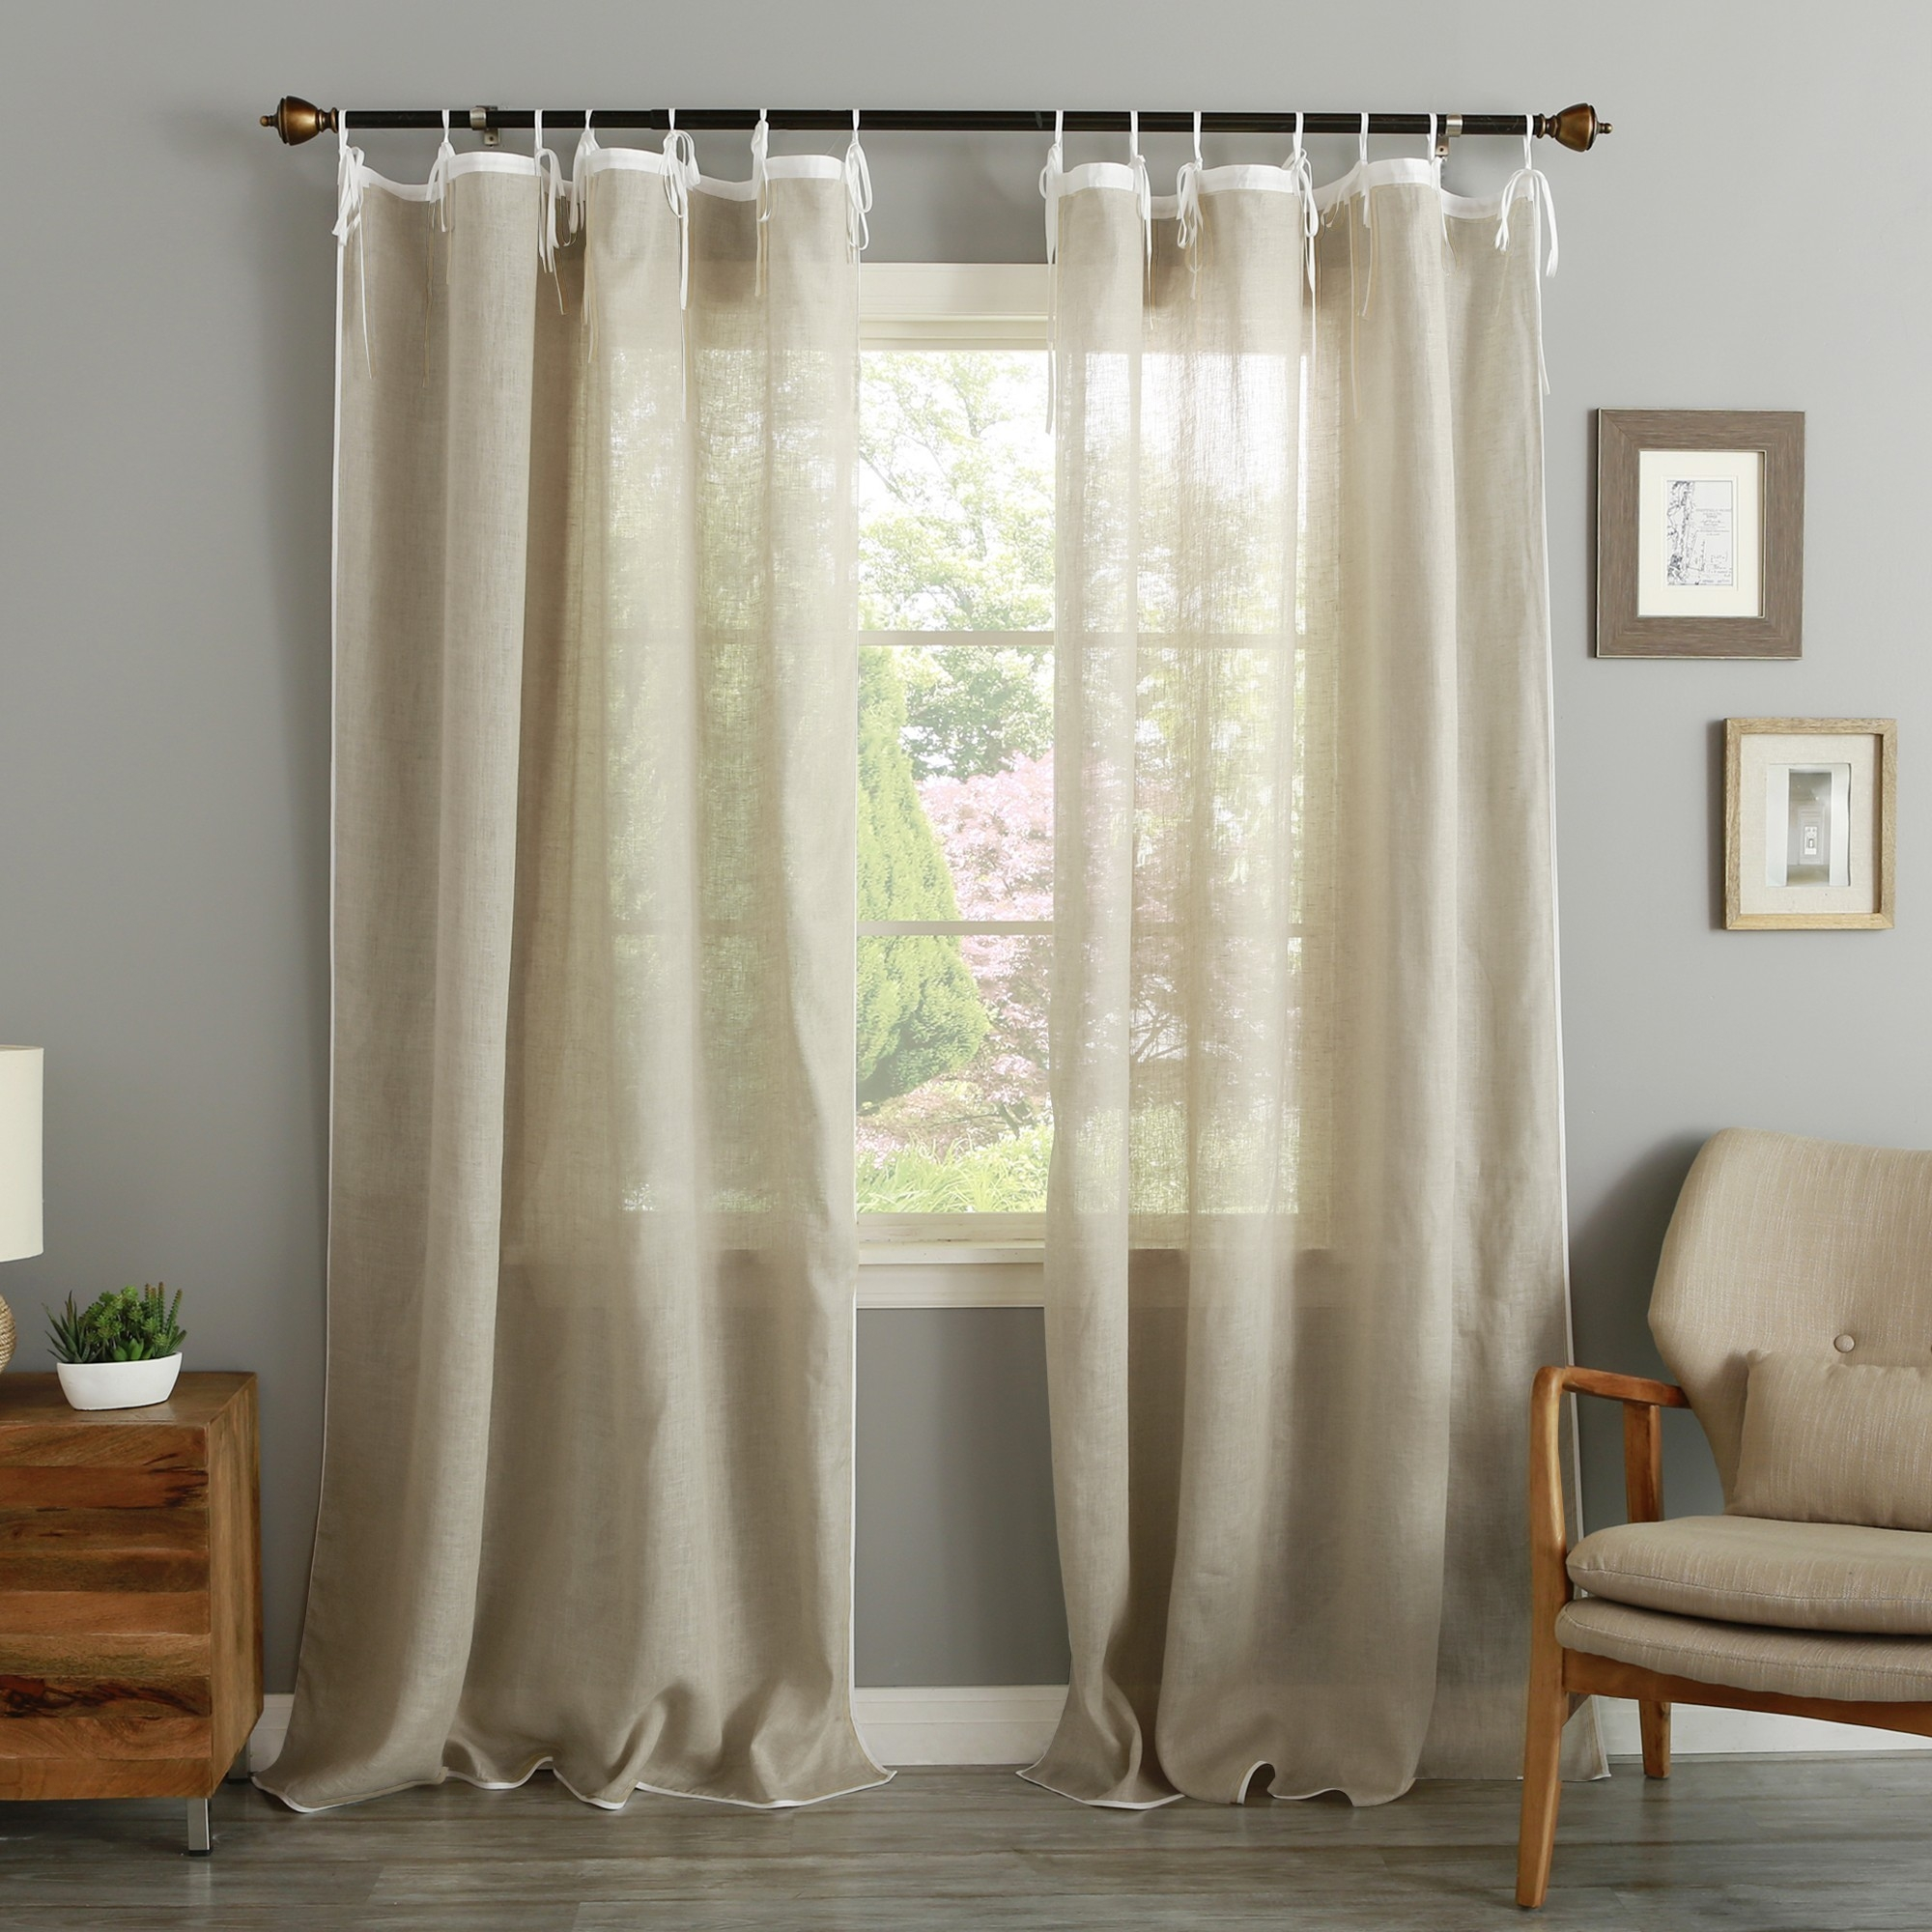 15 Best Collection Of Natural Linen Drapes Curtain Ideas